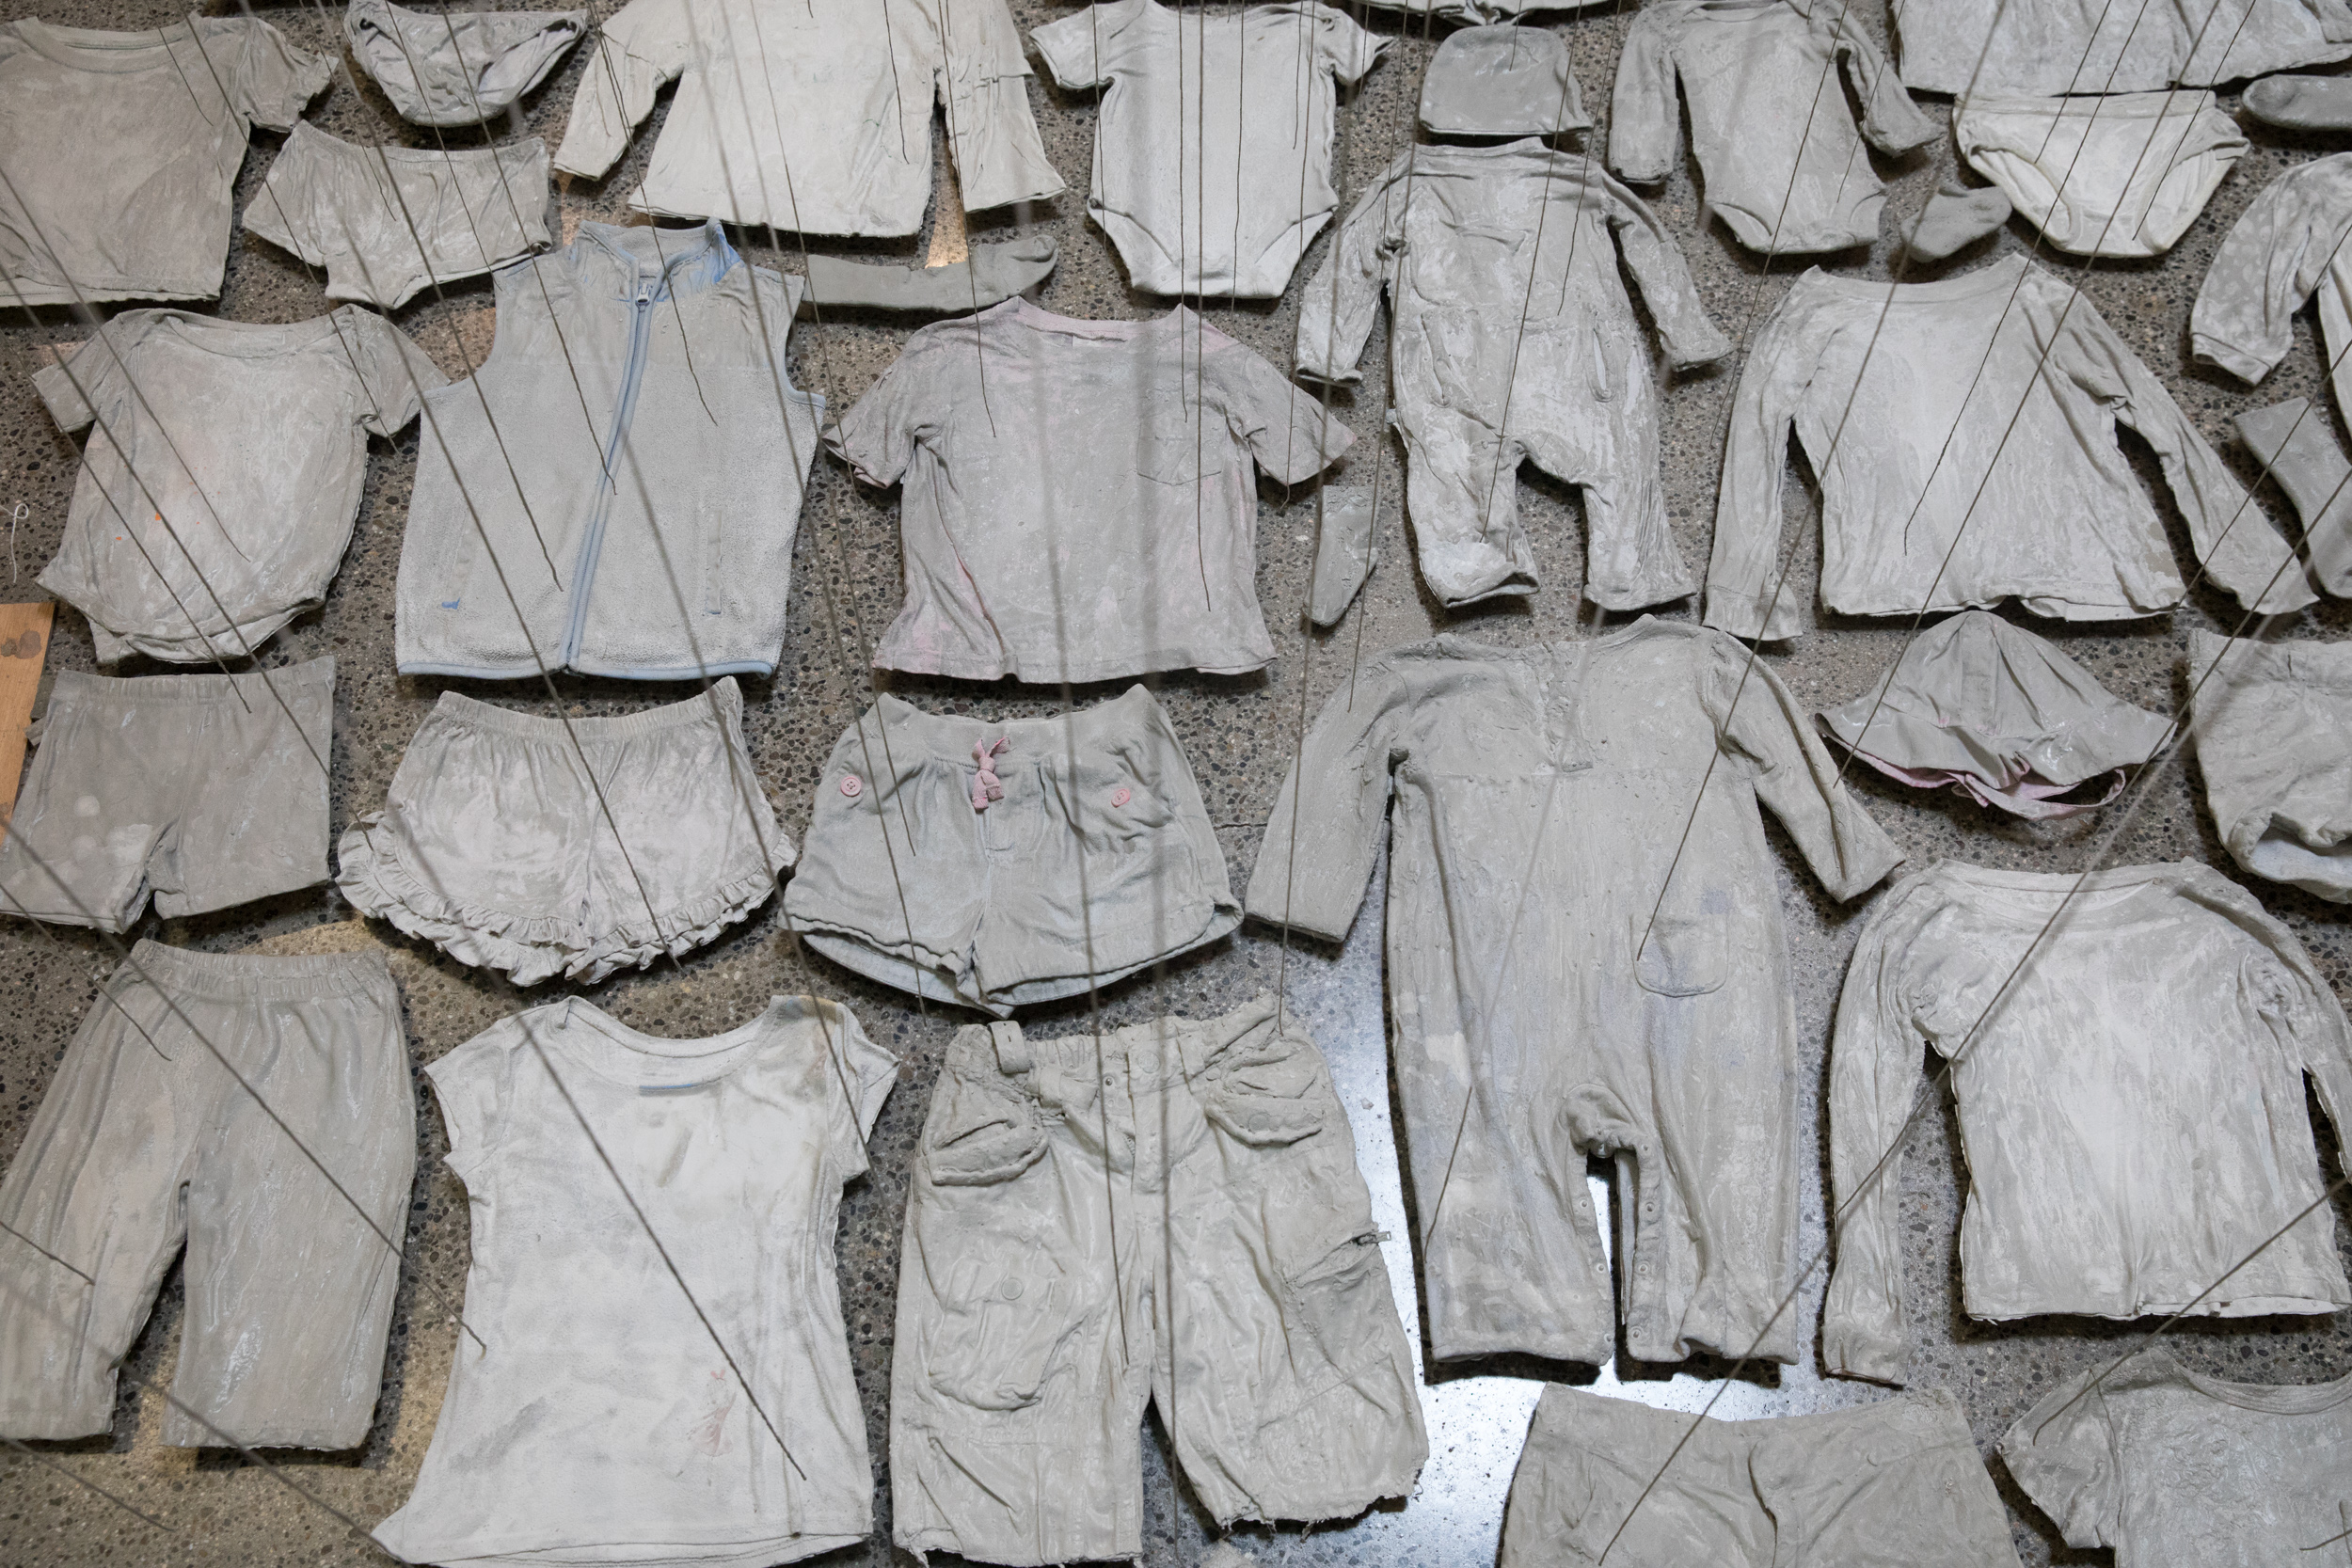 cemented children's clothes